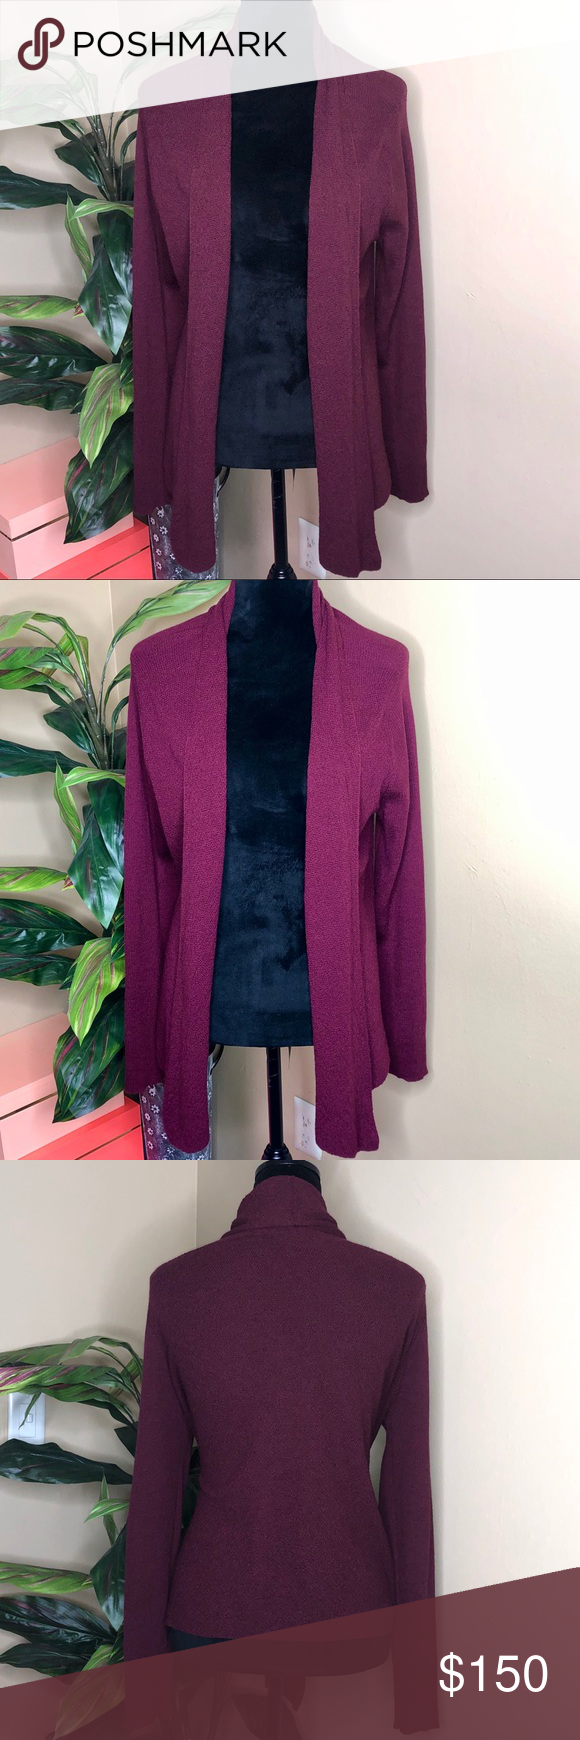 NWOT Eileen Fischer Shawl Collar Cardigan Sweater NWOT  Worn one time No flaws No stains Little to no signs on wear Size large Eileen Fisher Sweaters Cardigans #myposhpicks